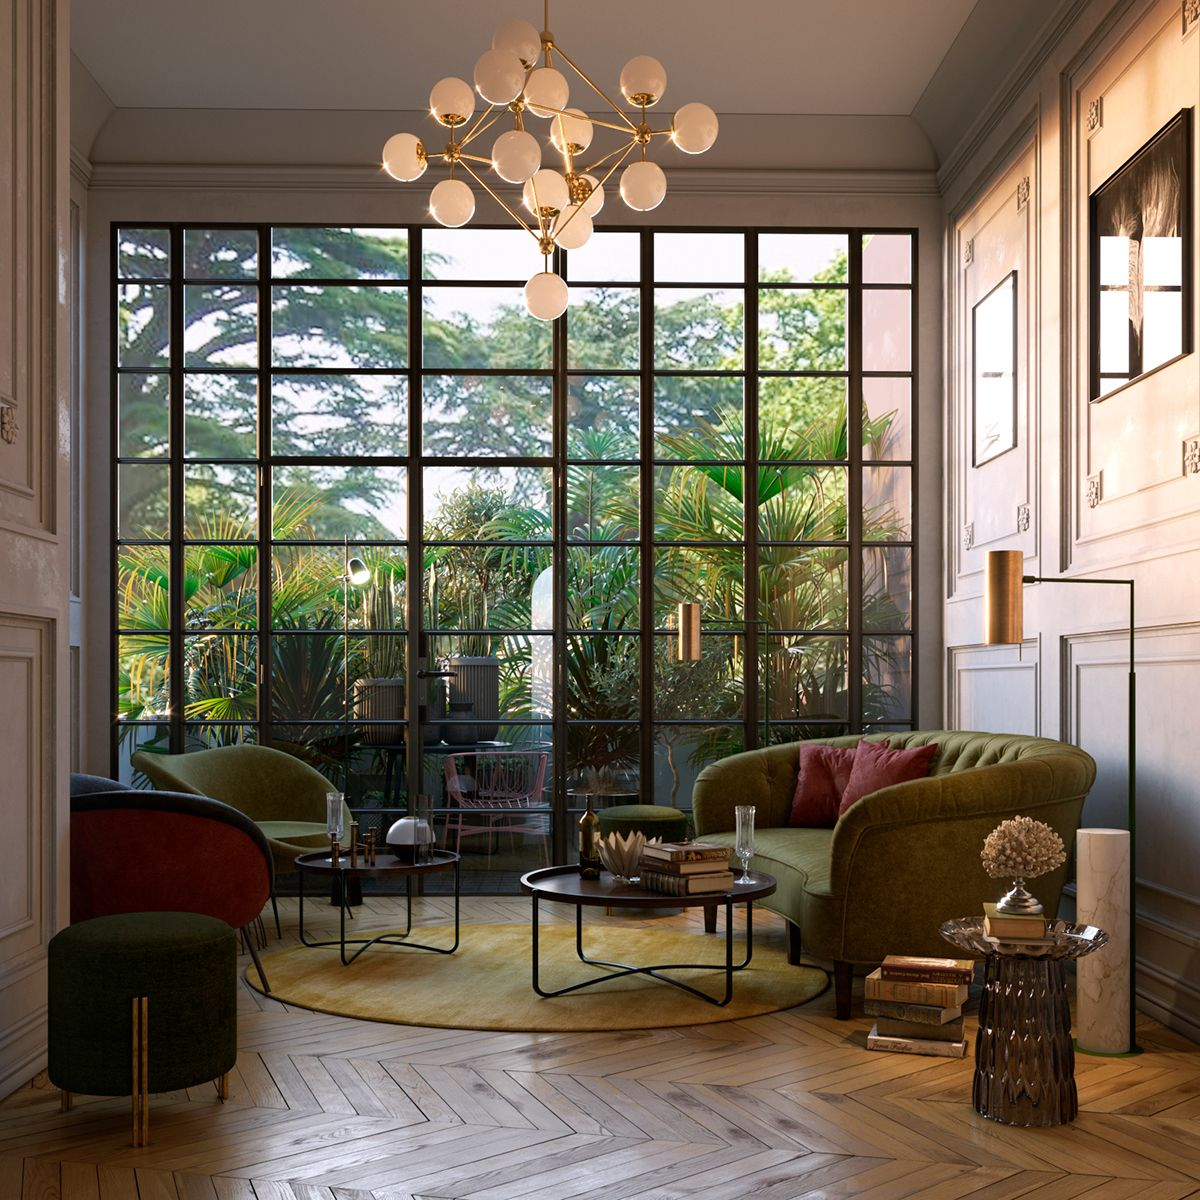 Cozy Reading Room In Roma On Behance Cozy Reading Rooms Home House Interior